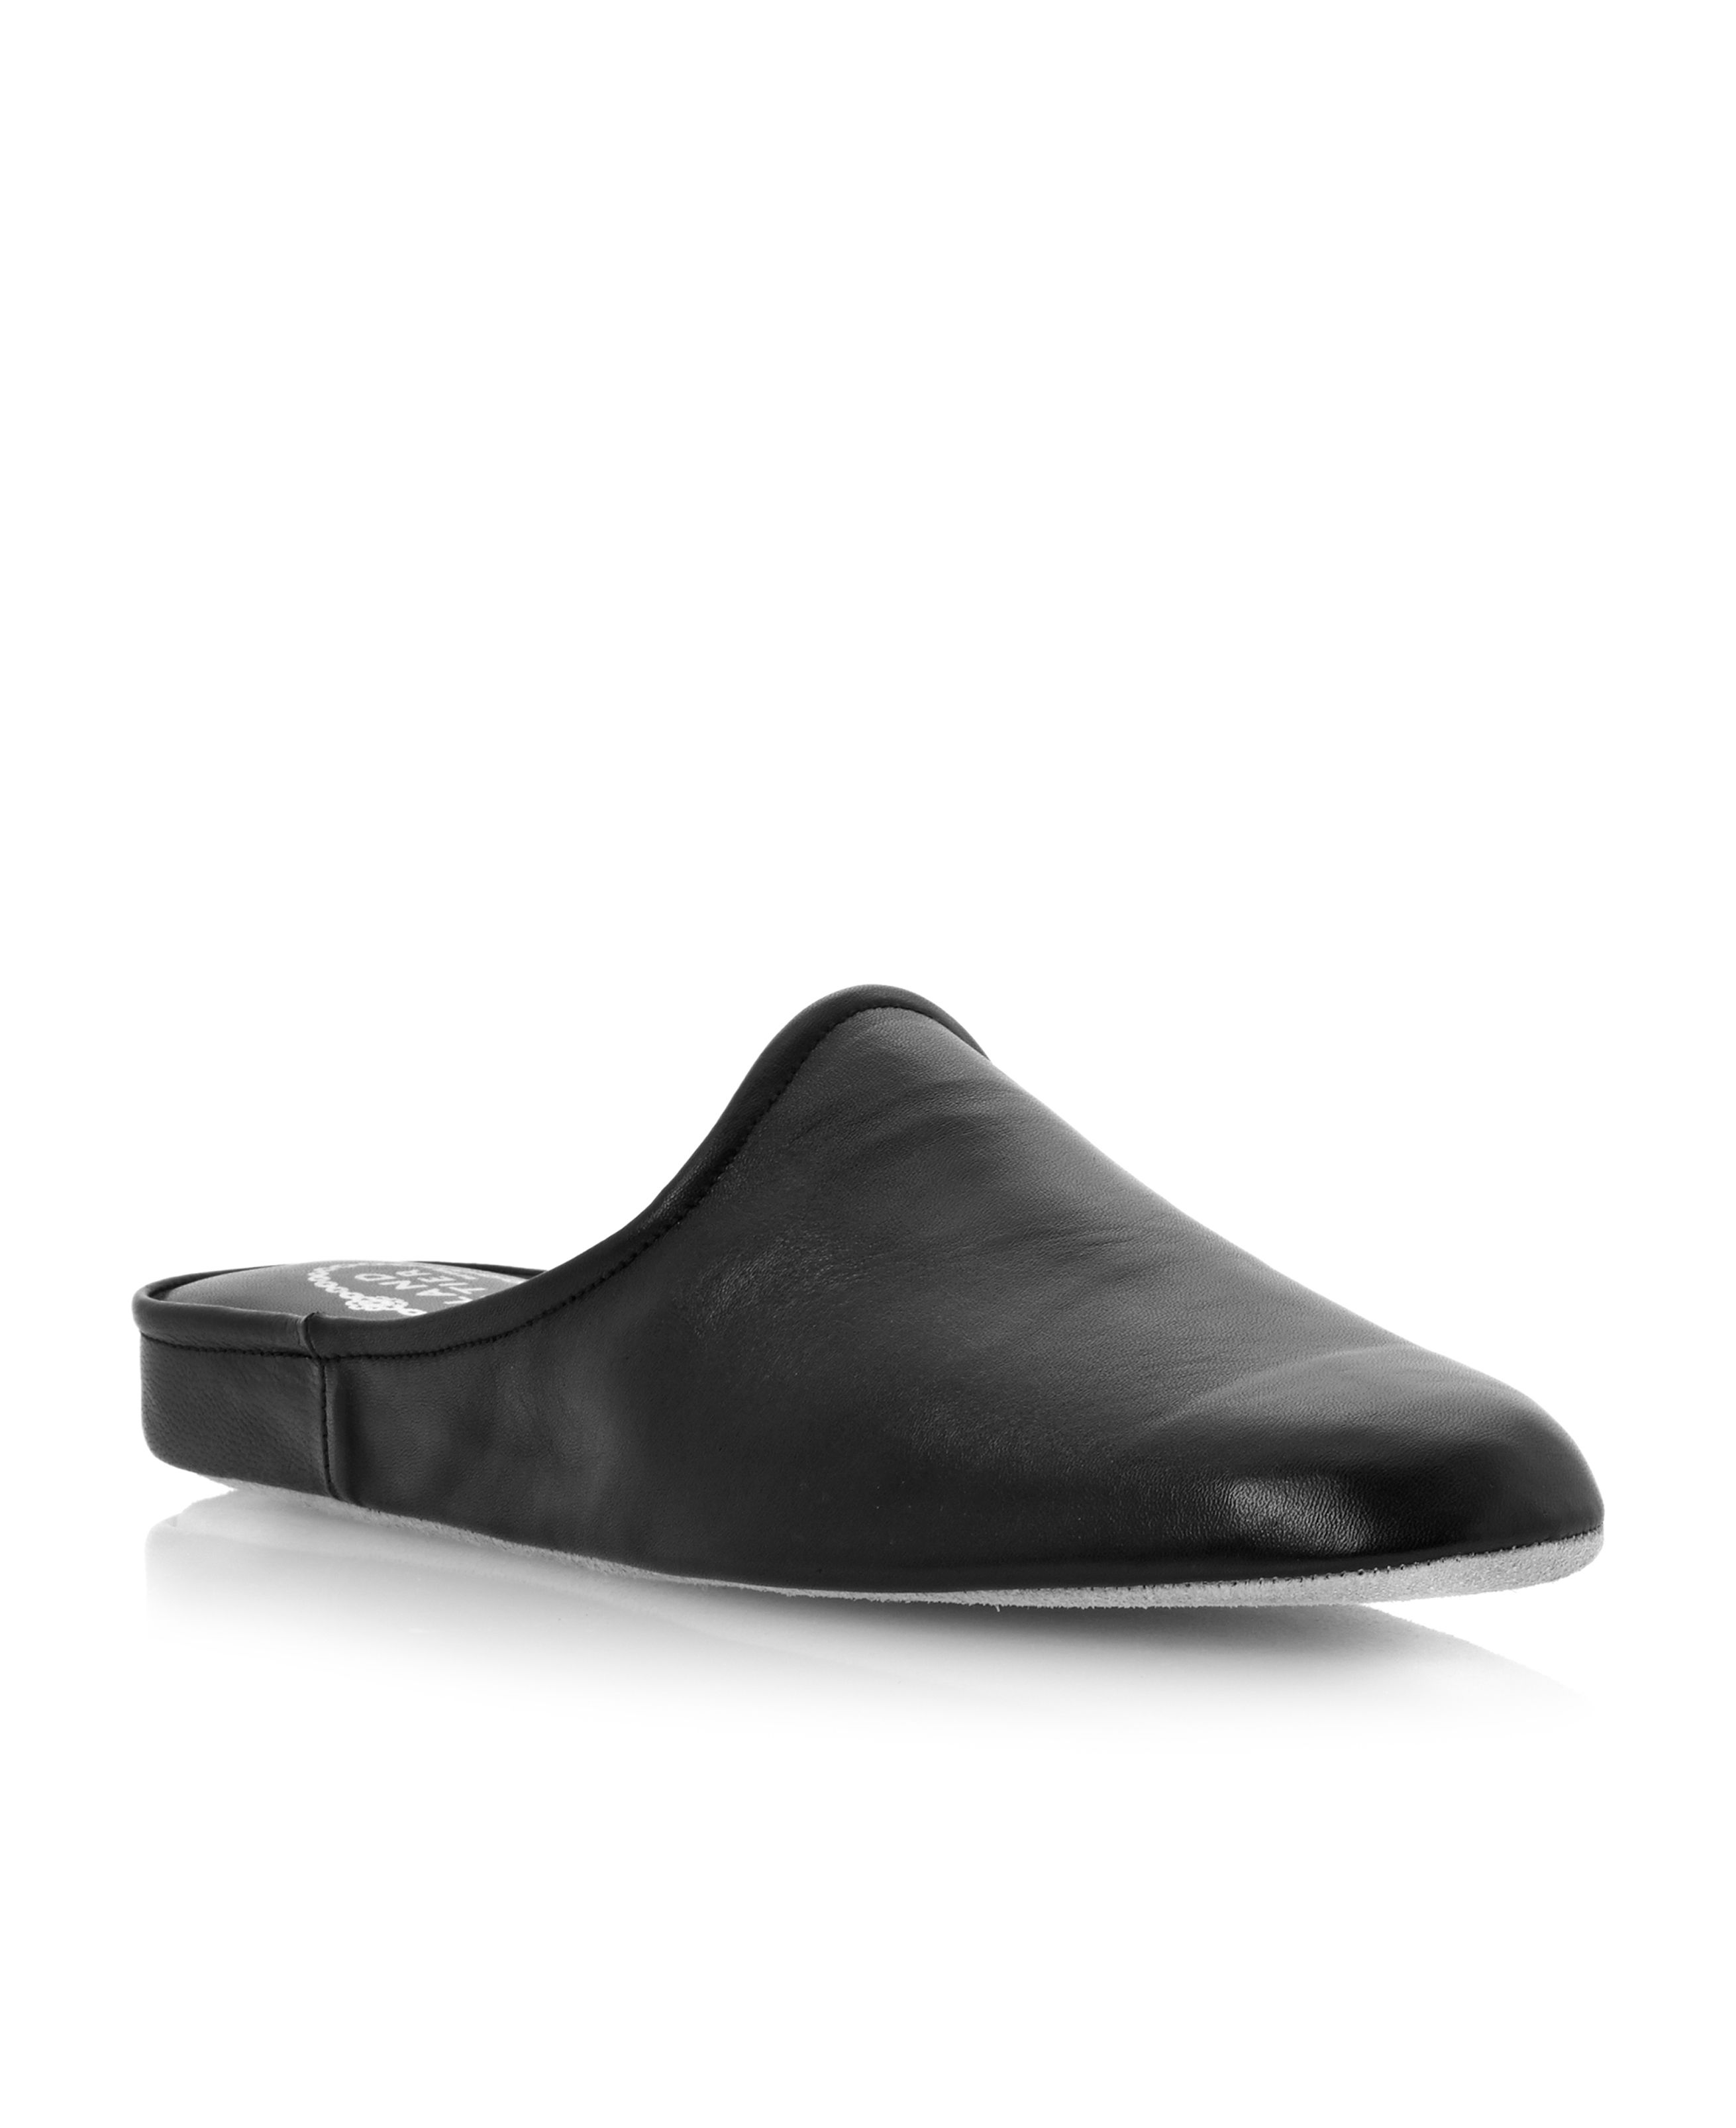 Finsbury Circus soft leather mule slippers